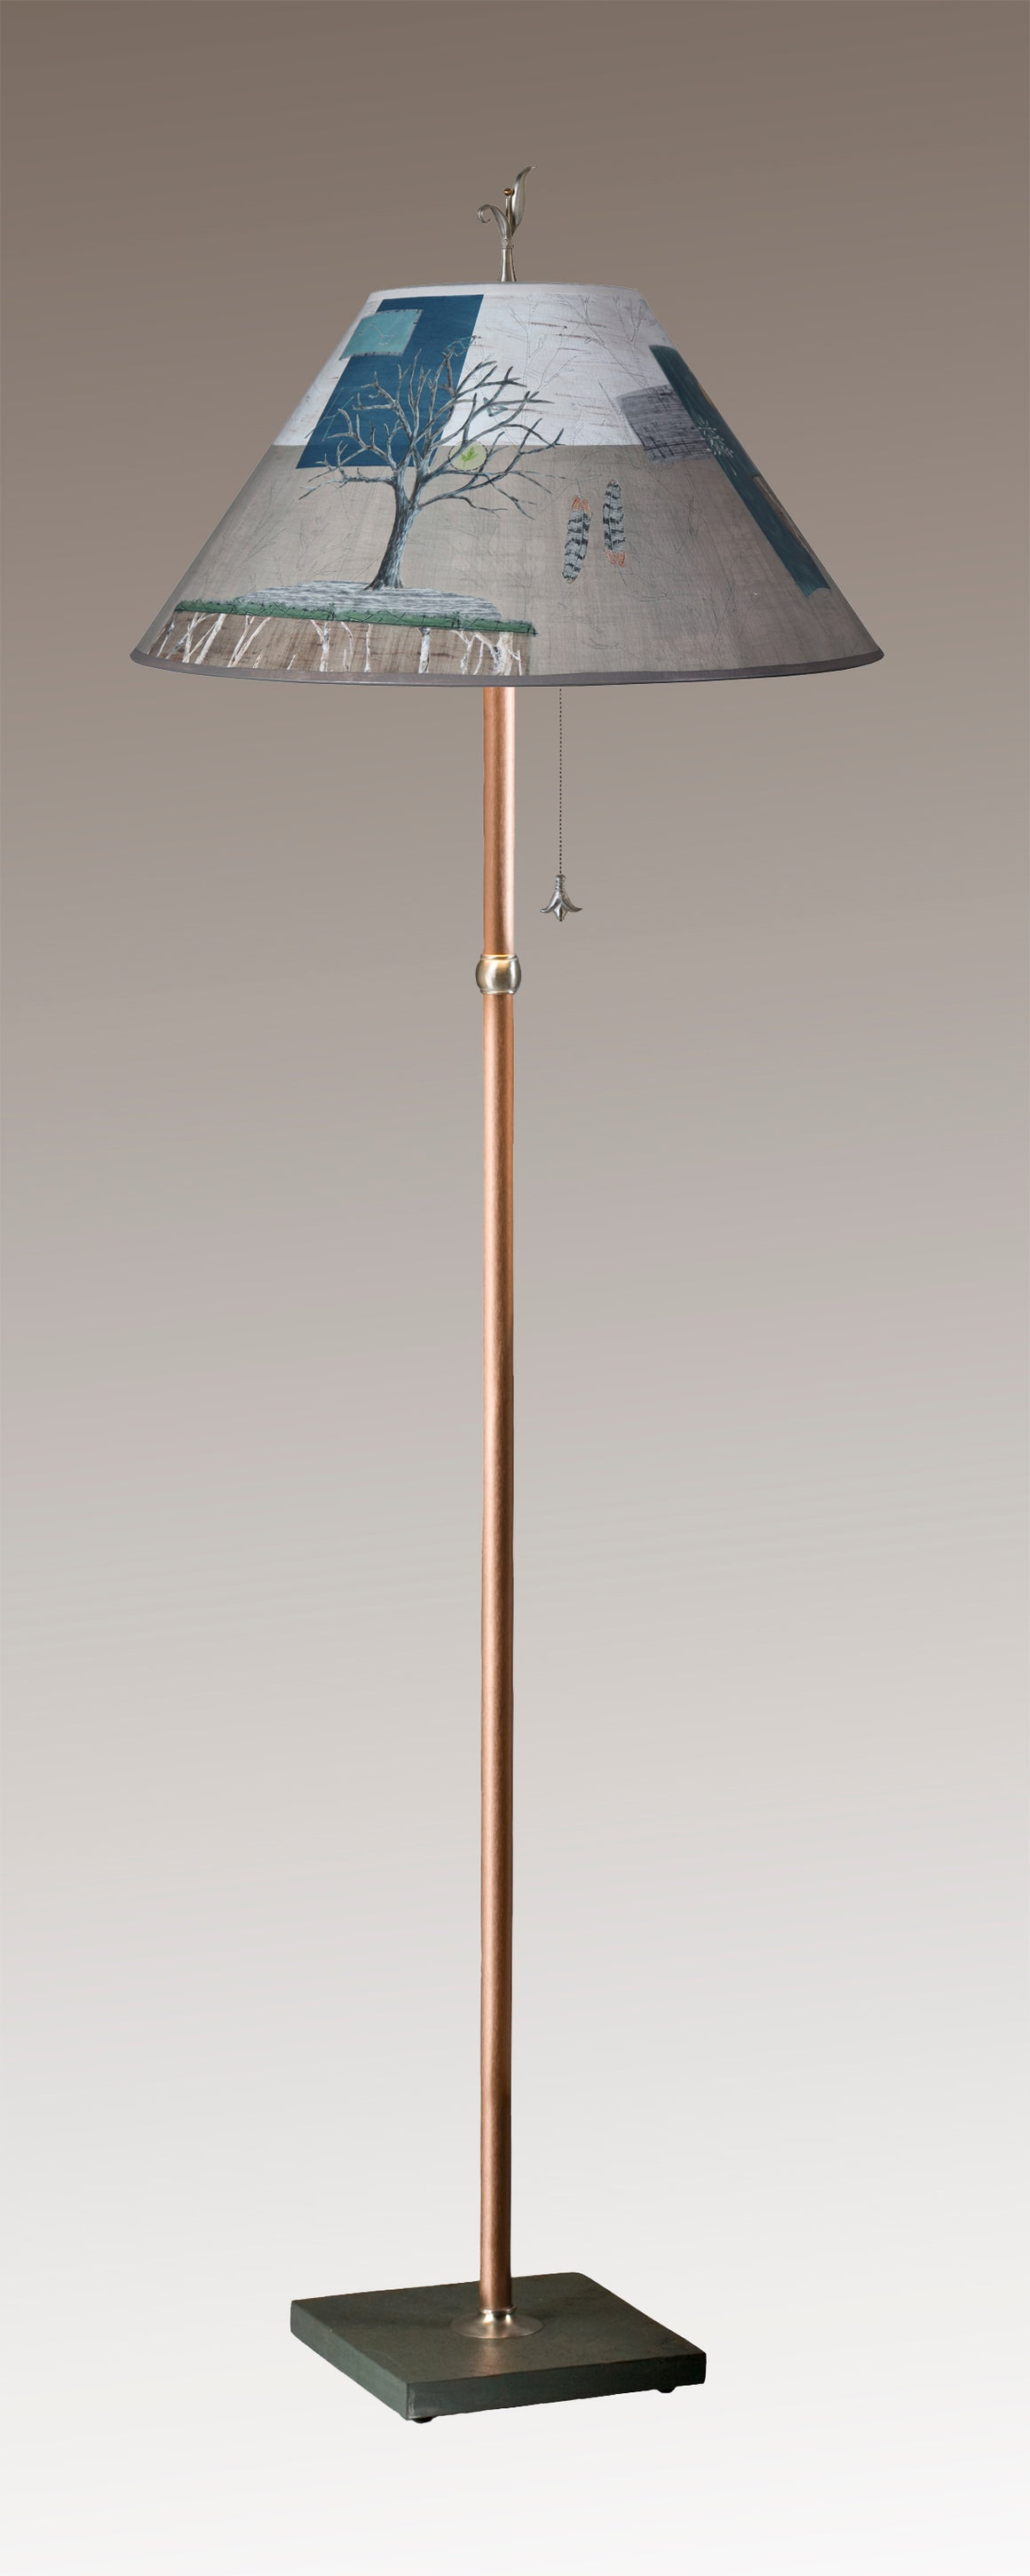 Copper Floor Lamp on Vermont Slate Base with Large Conical Shade in Wander in Drift